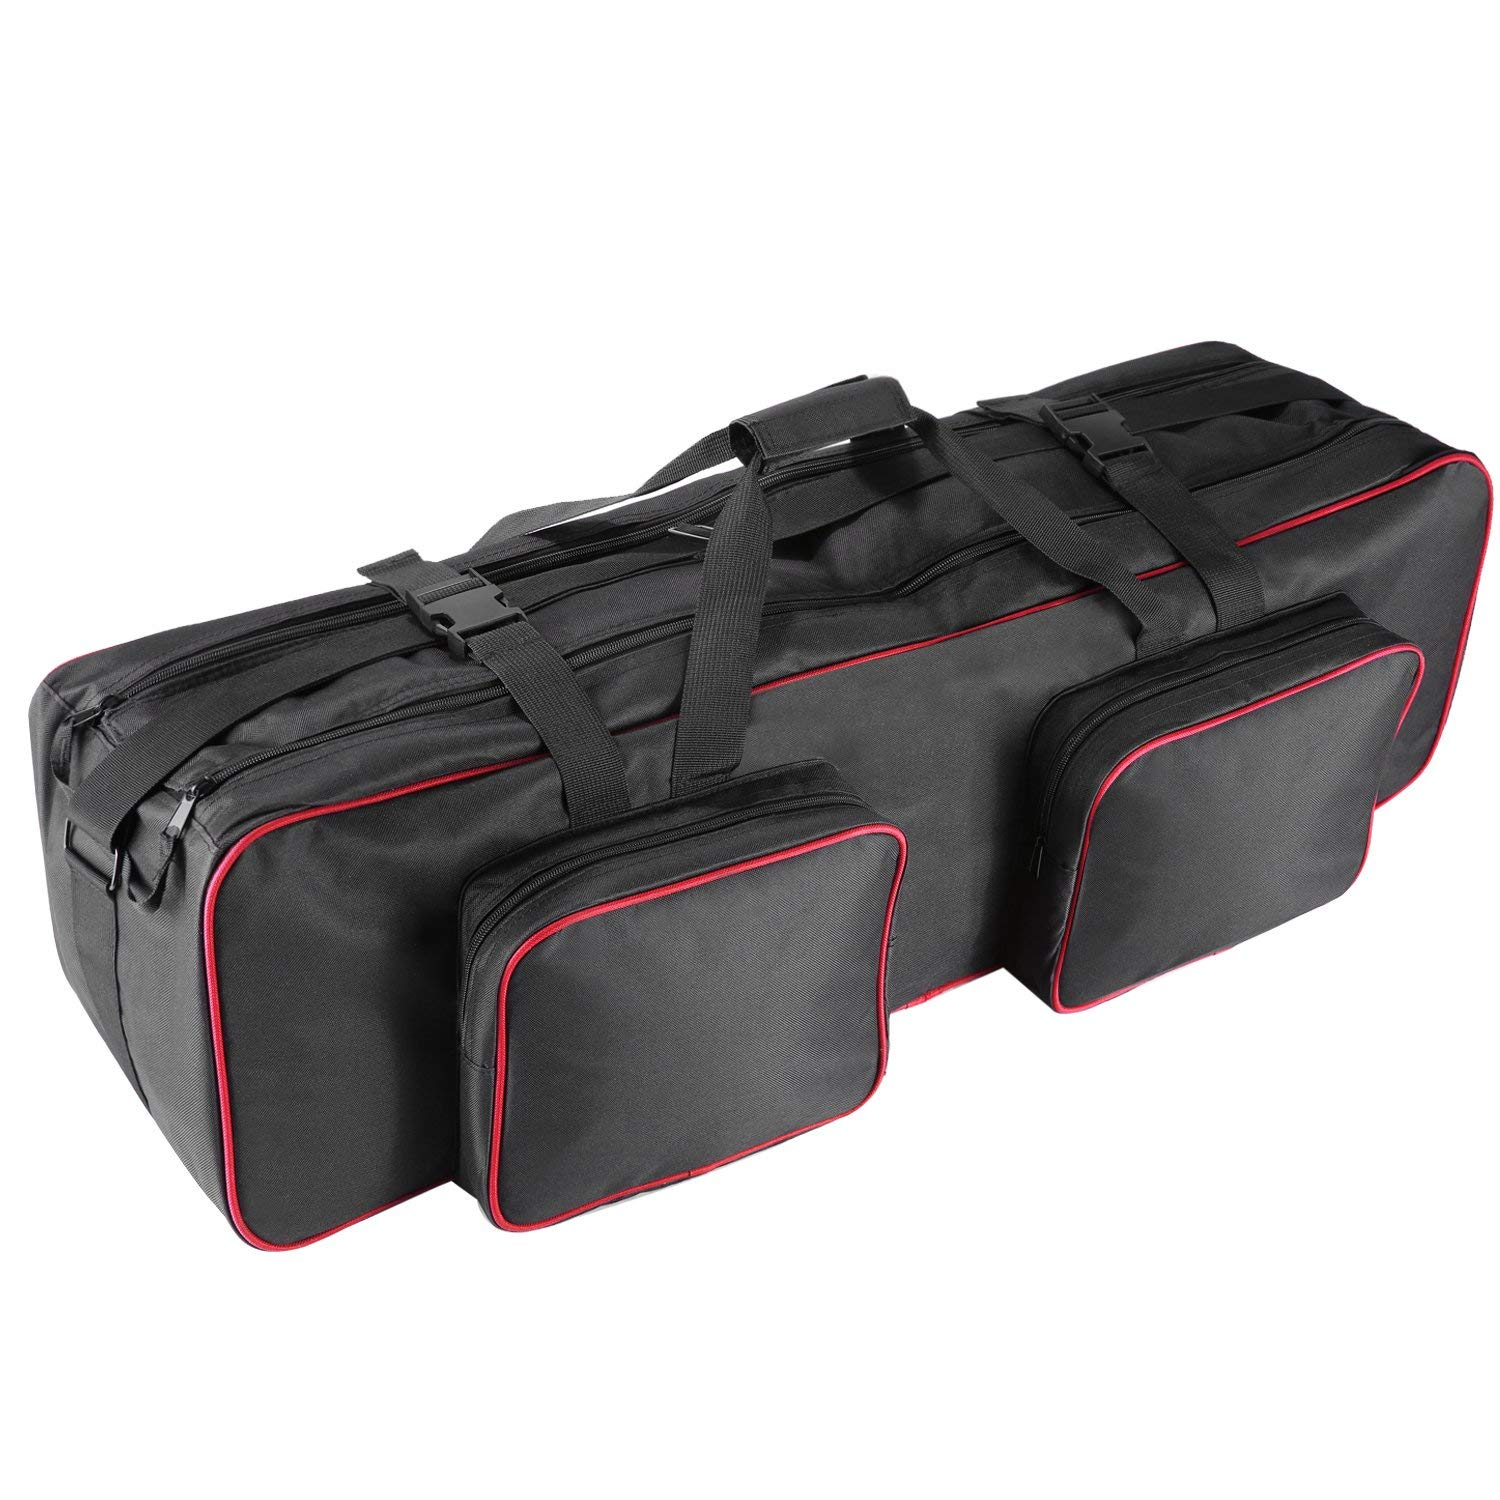 Neewer Large Photo/Video Equipment Carrying Case 36x9x9 in. - $27.99 + Free Shipping